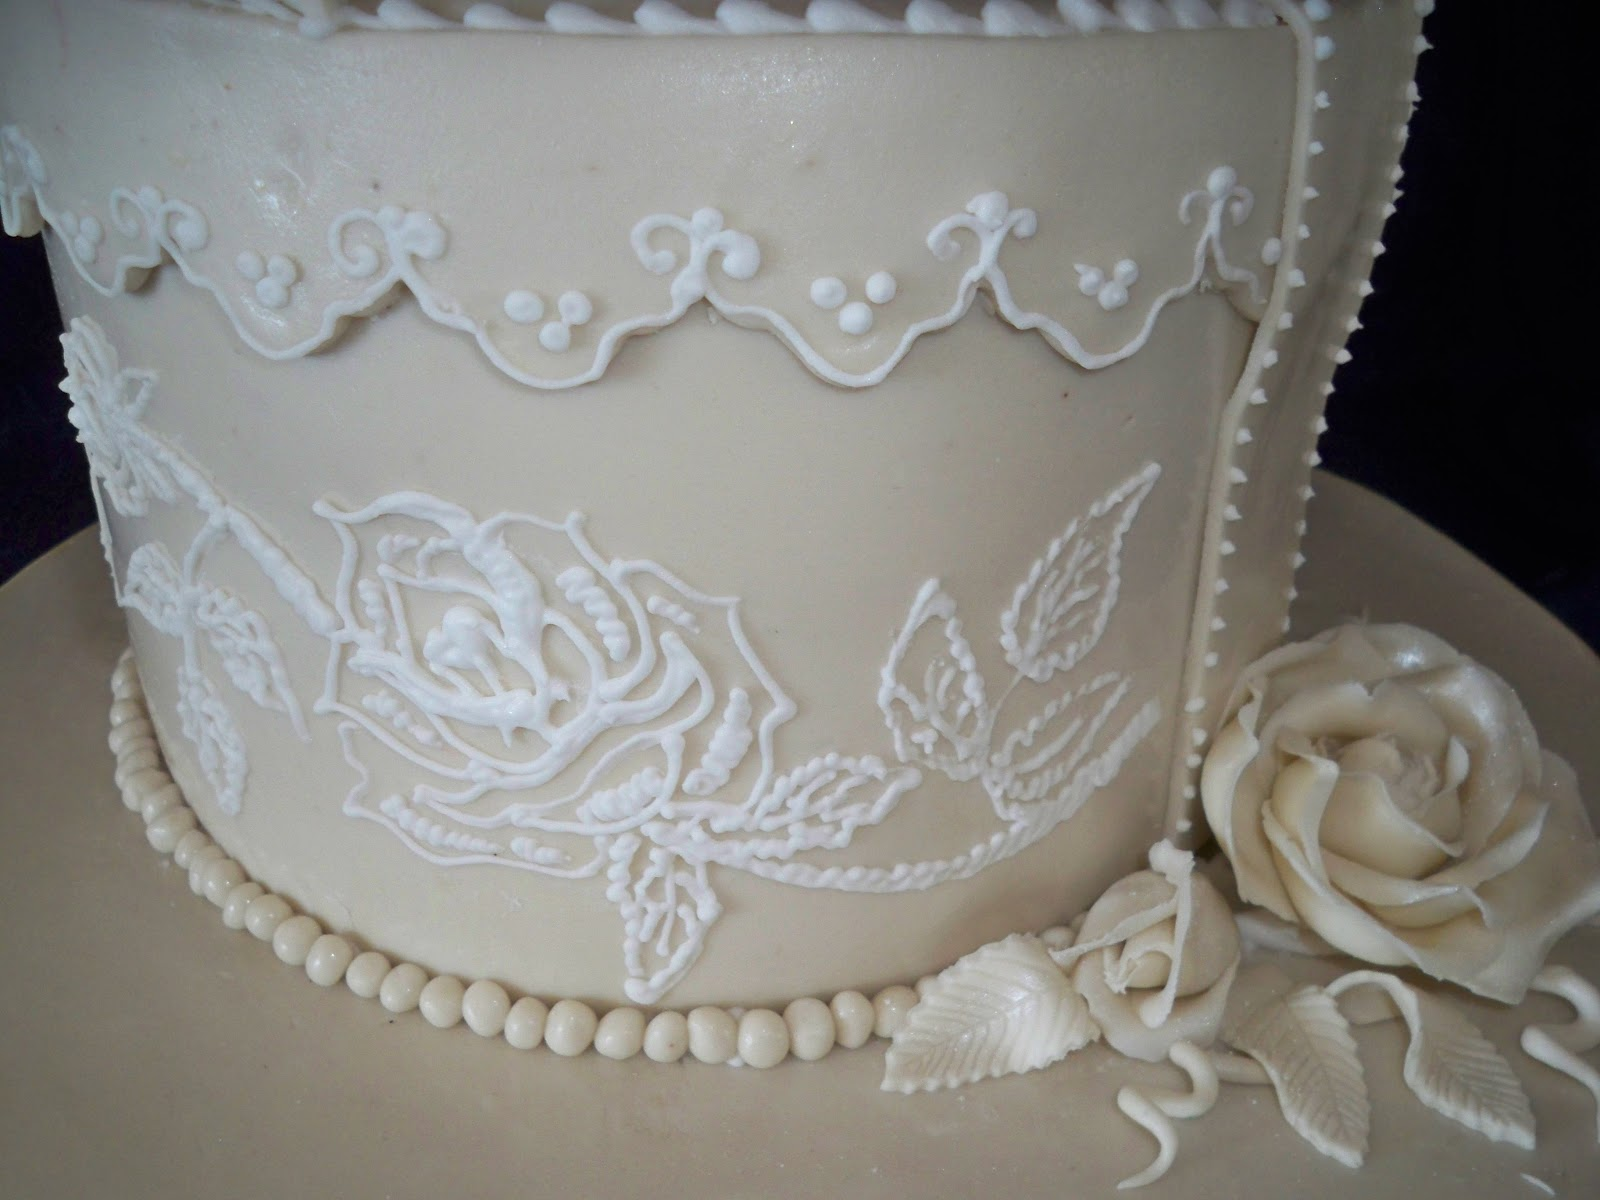 Lace Piping Cake Decorating : lace, brooche and bow vintage style wedding cake